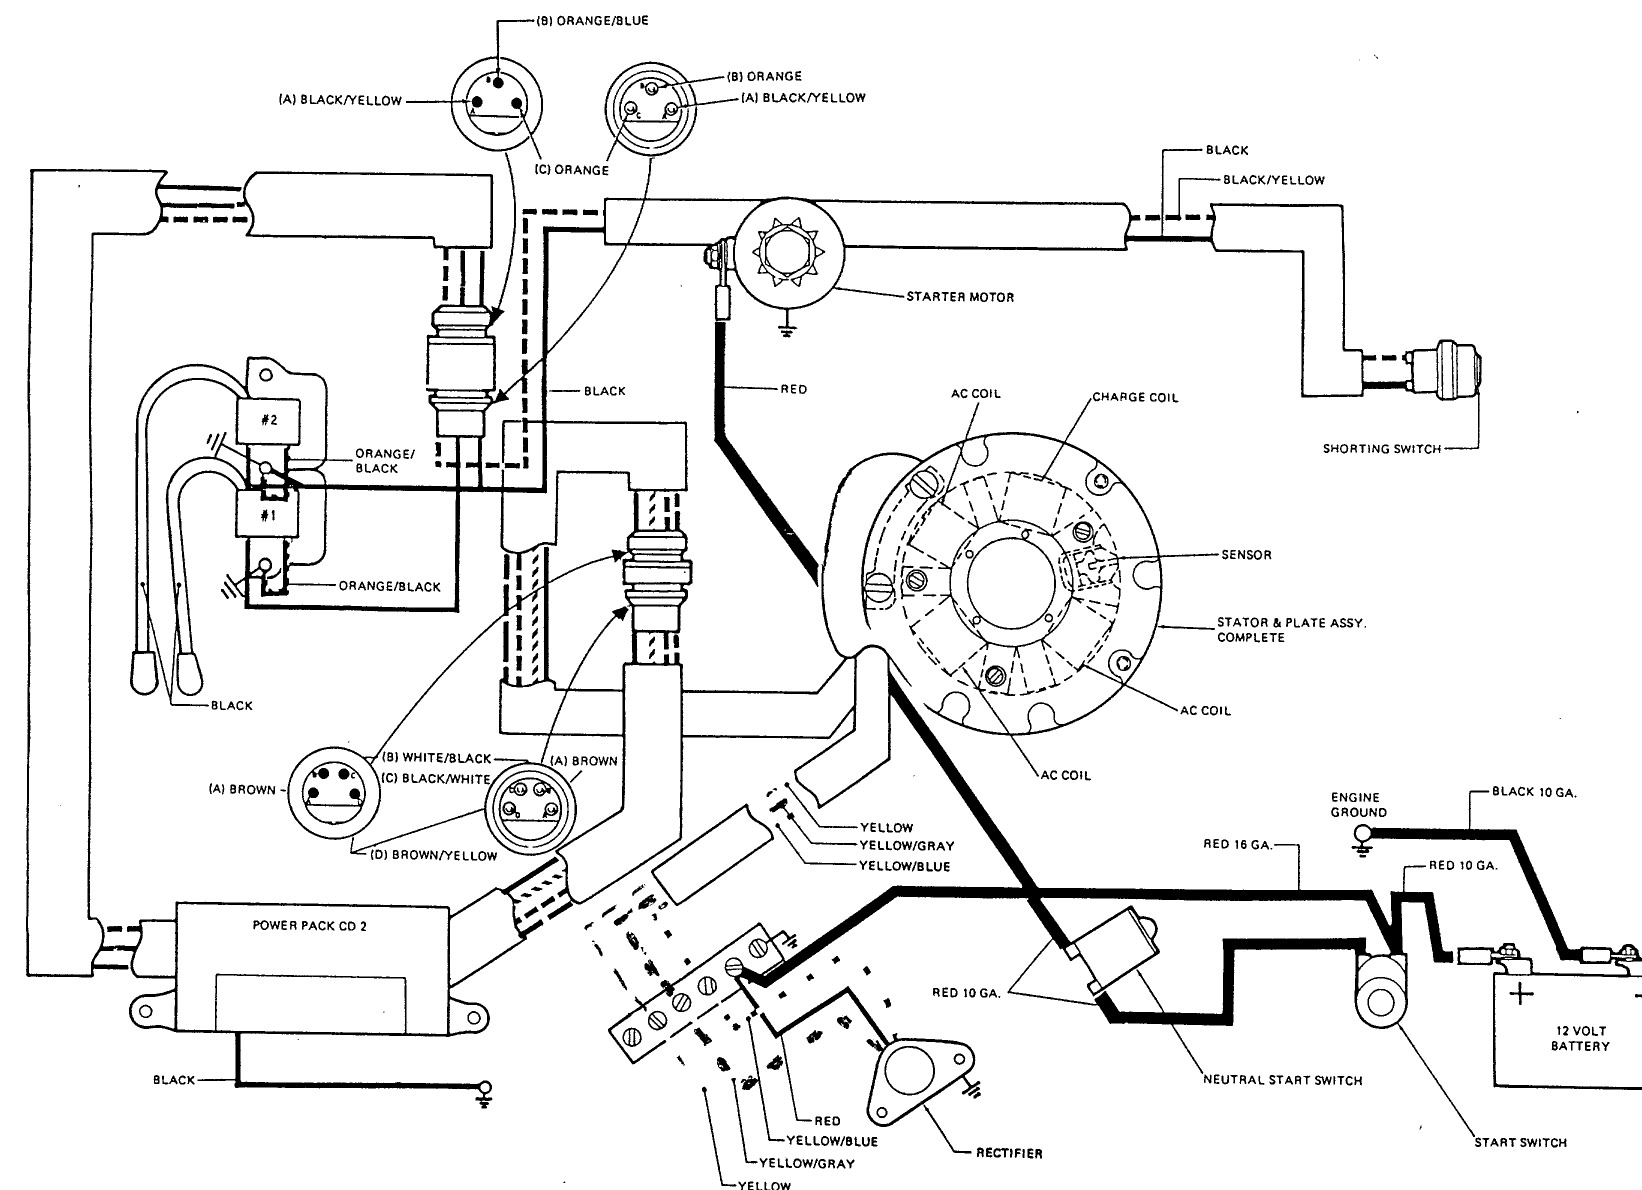 Yamaha Outbord 55hp Wiring Diagram And Schematics 70 Hp Evinrude Maintaining Johnson 9 Rh Leeroysramblings Com 1989